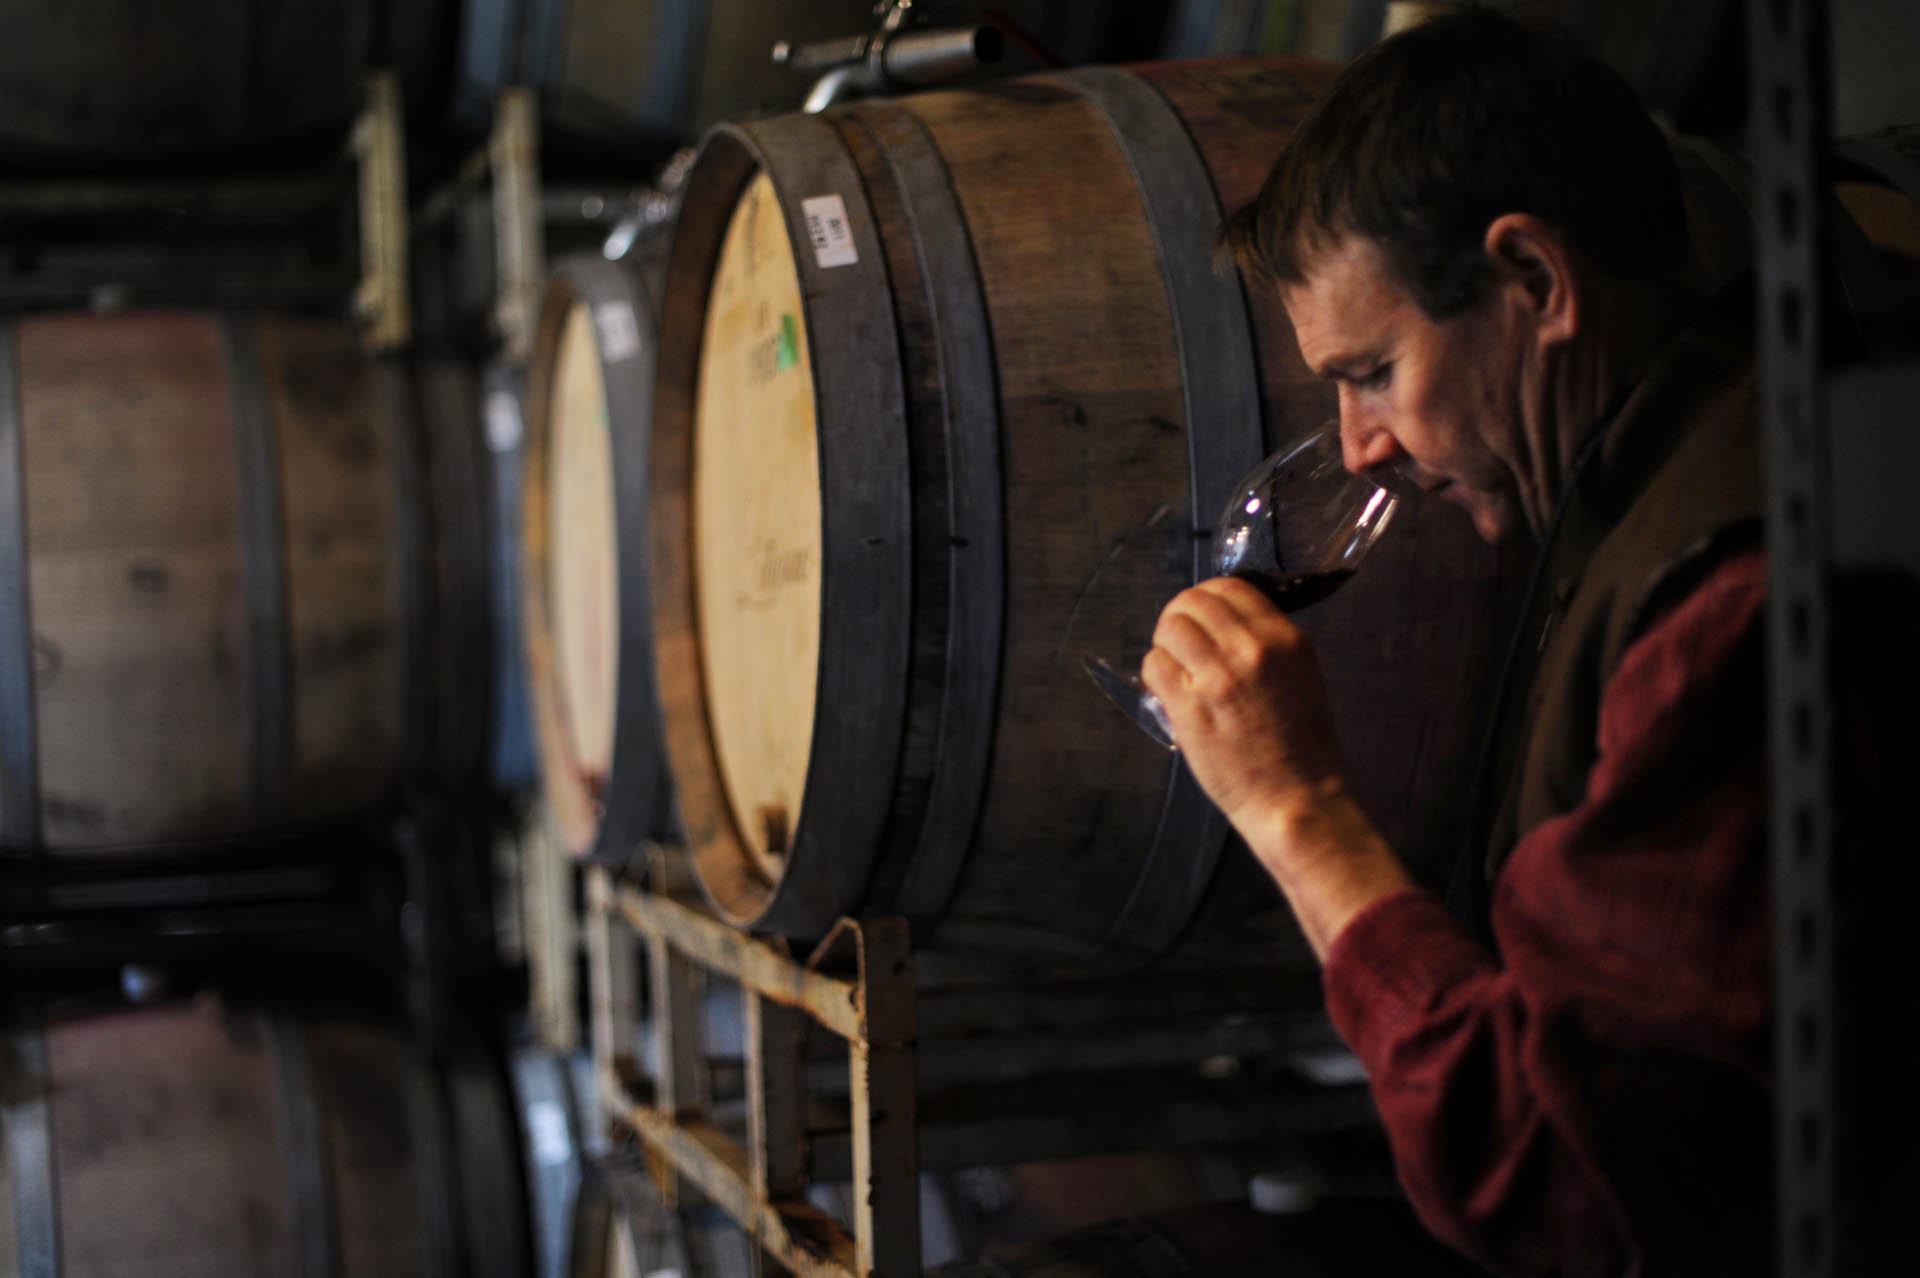 Superstar Sonoma Coast winemaker Ted Lemon of Littorai has made great wine in France's Burgundy region, in California and now in New Zealand's Central Otago.